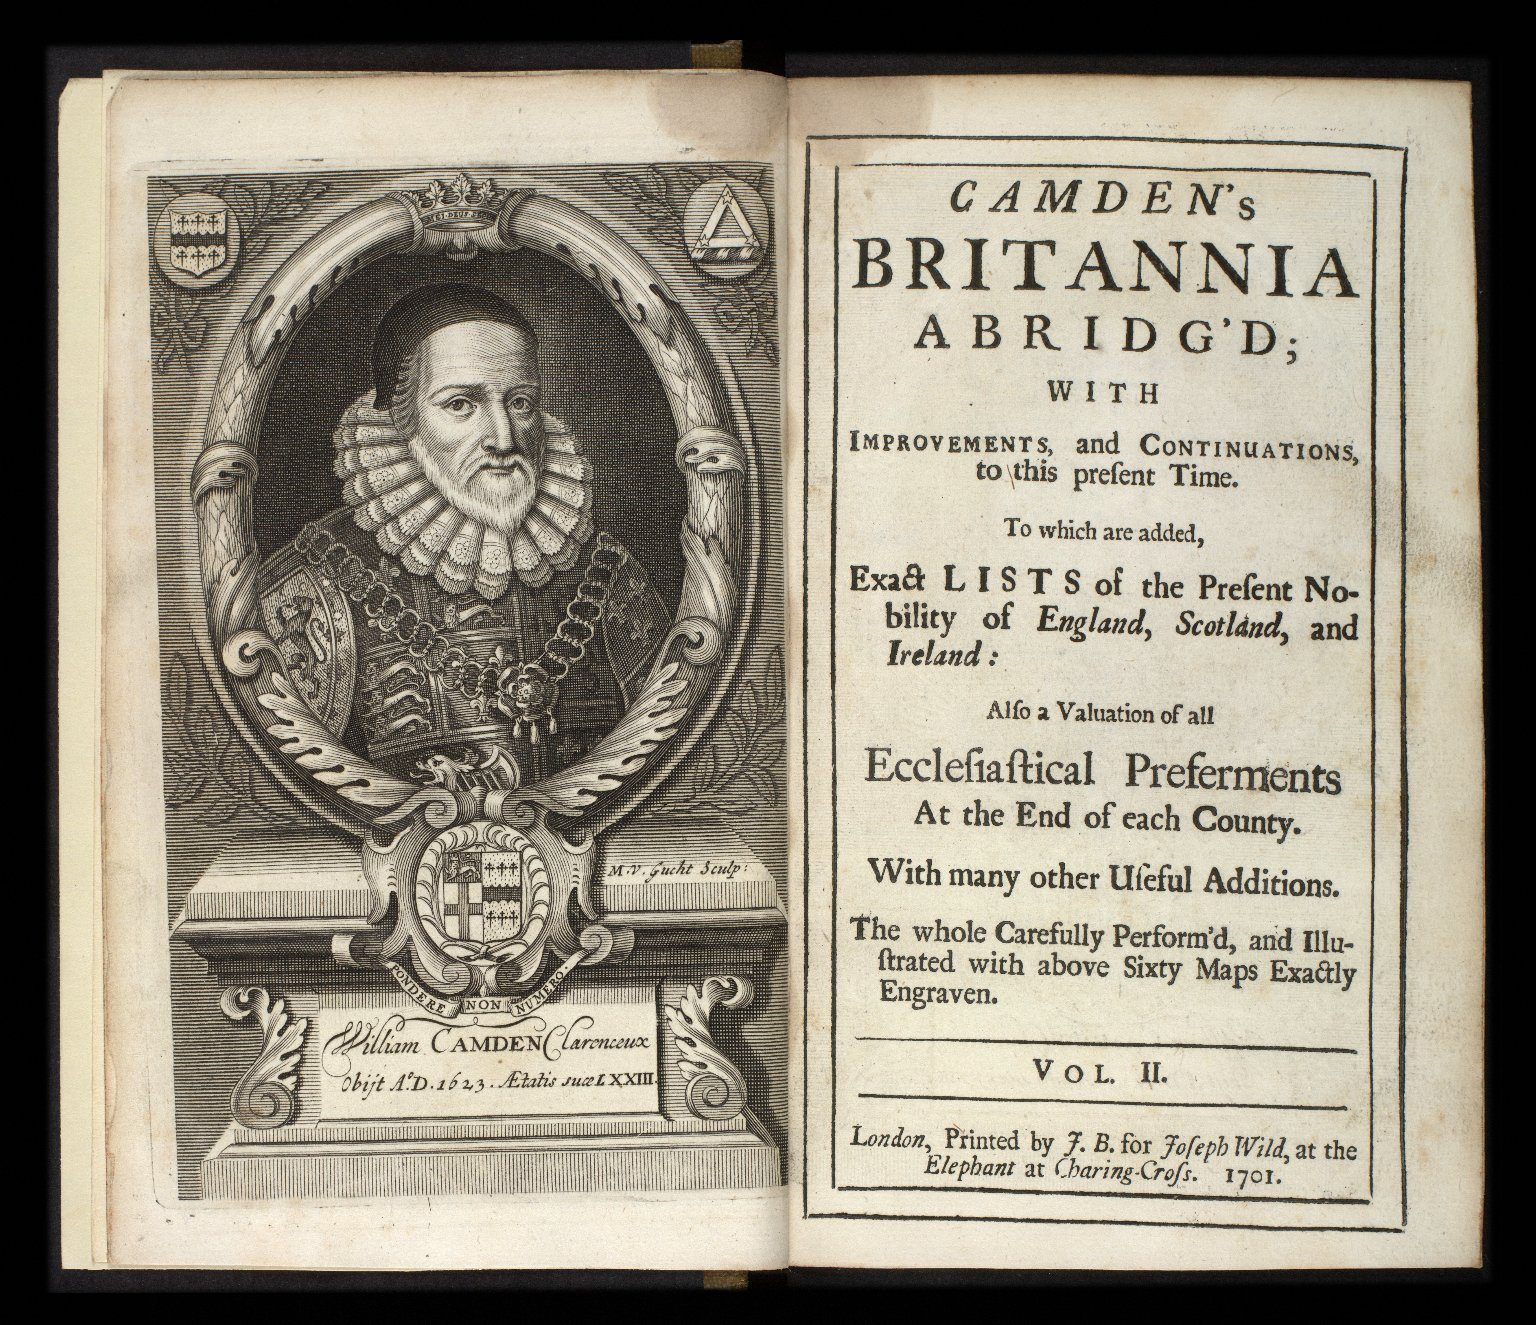 Camden's Britannia abridg'd ... illustrated with above sixty maps exactly engraven. [1 of 1]